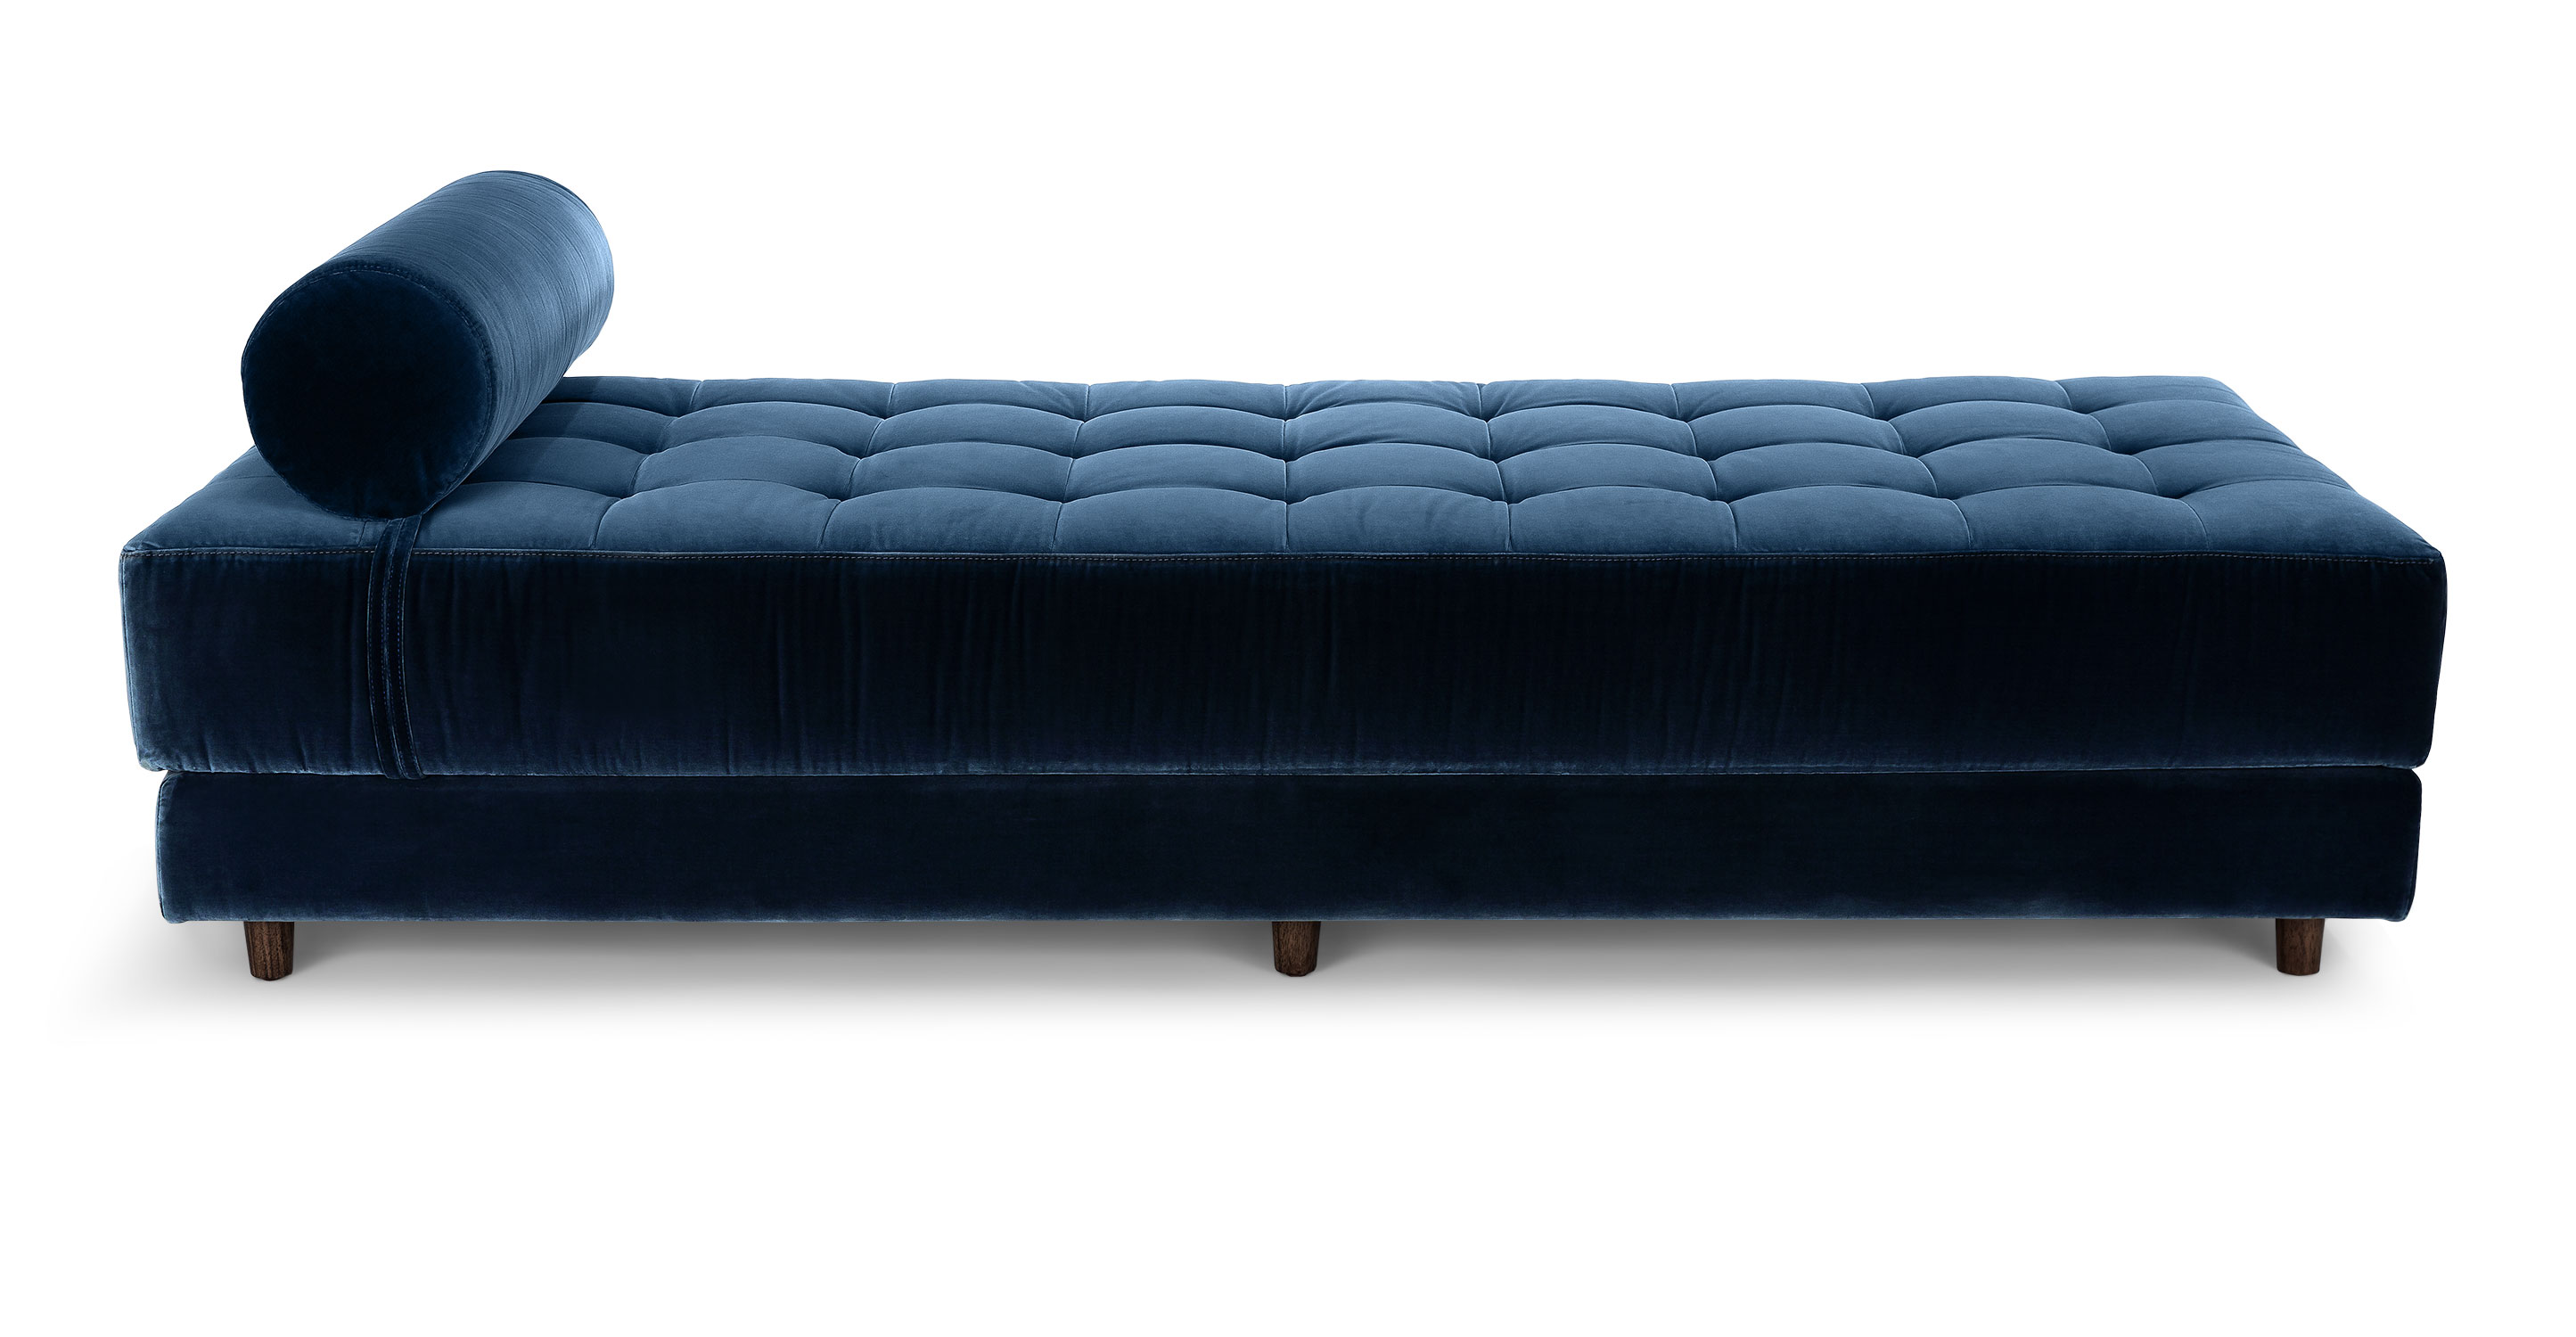 Sven Cascadia Blue Daybed - Sofas Article Modern Mid